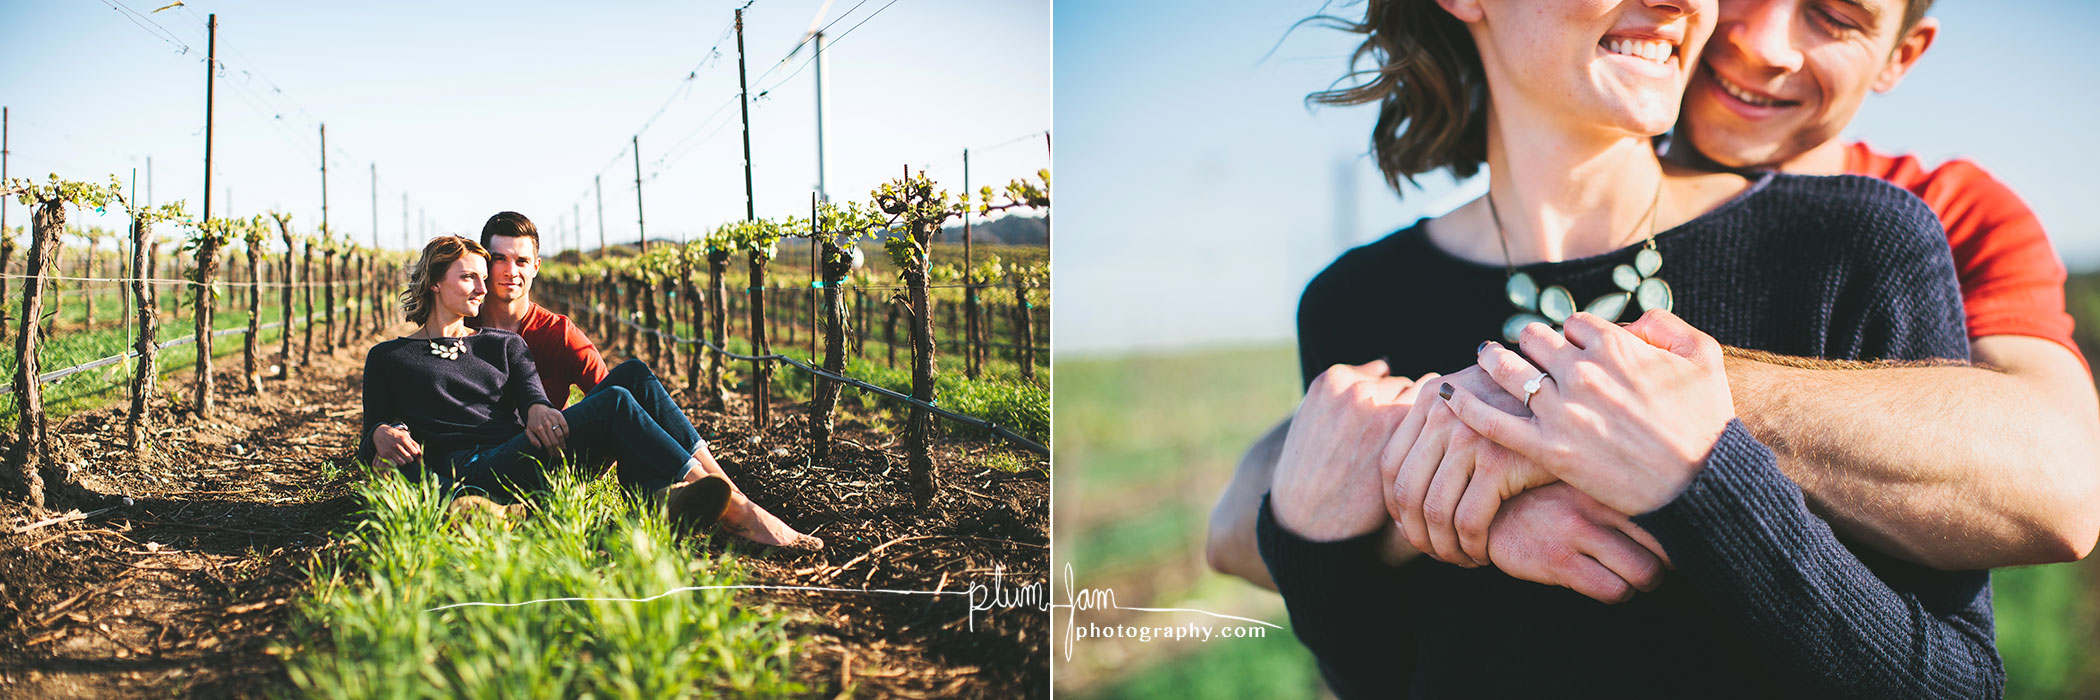 RebeccaMike-Engagement-vineyard-shellbeach-california-plumjamphotography-07